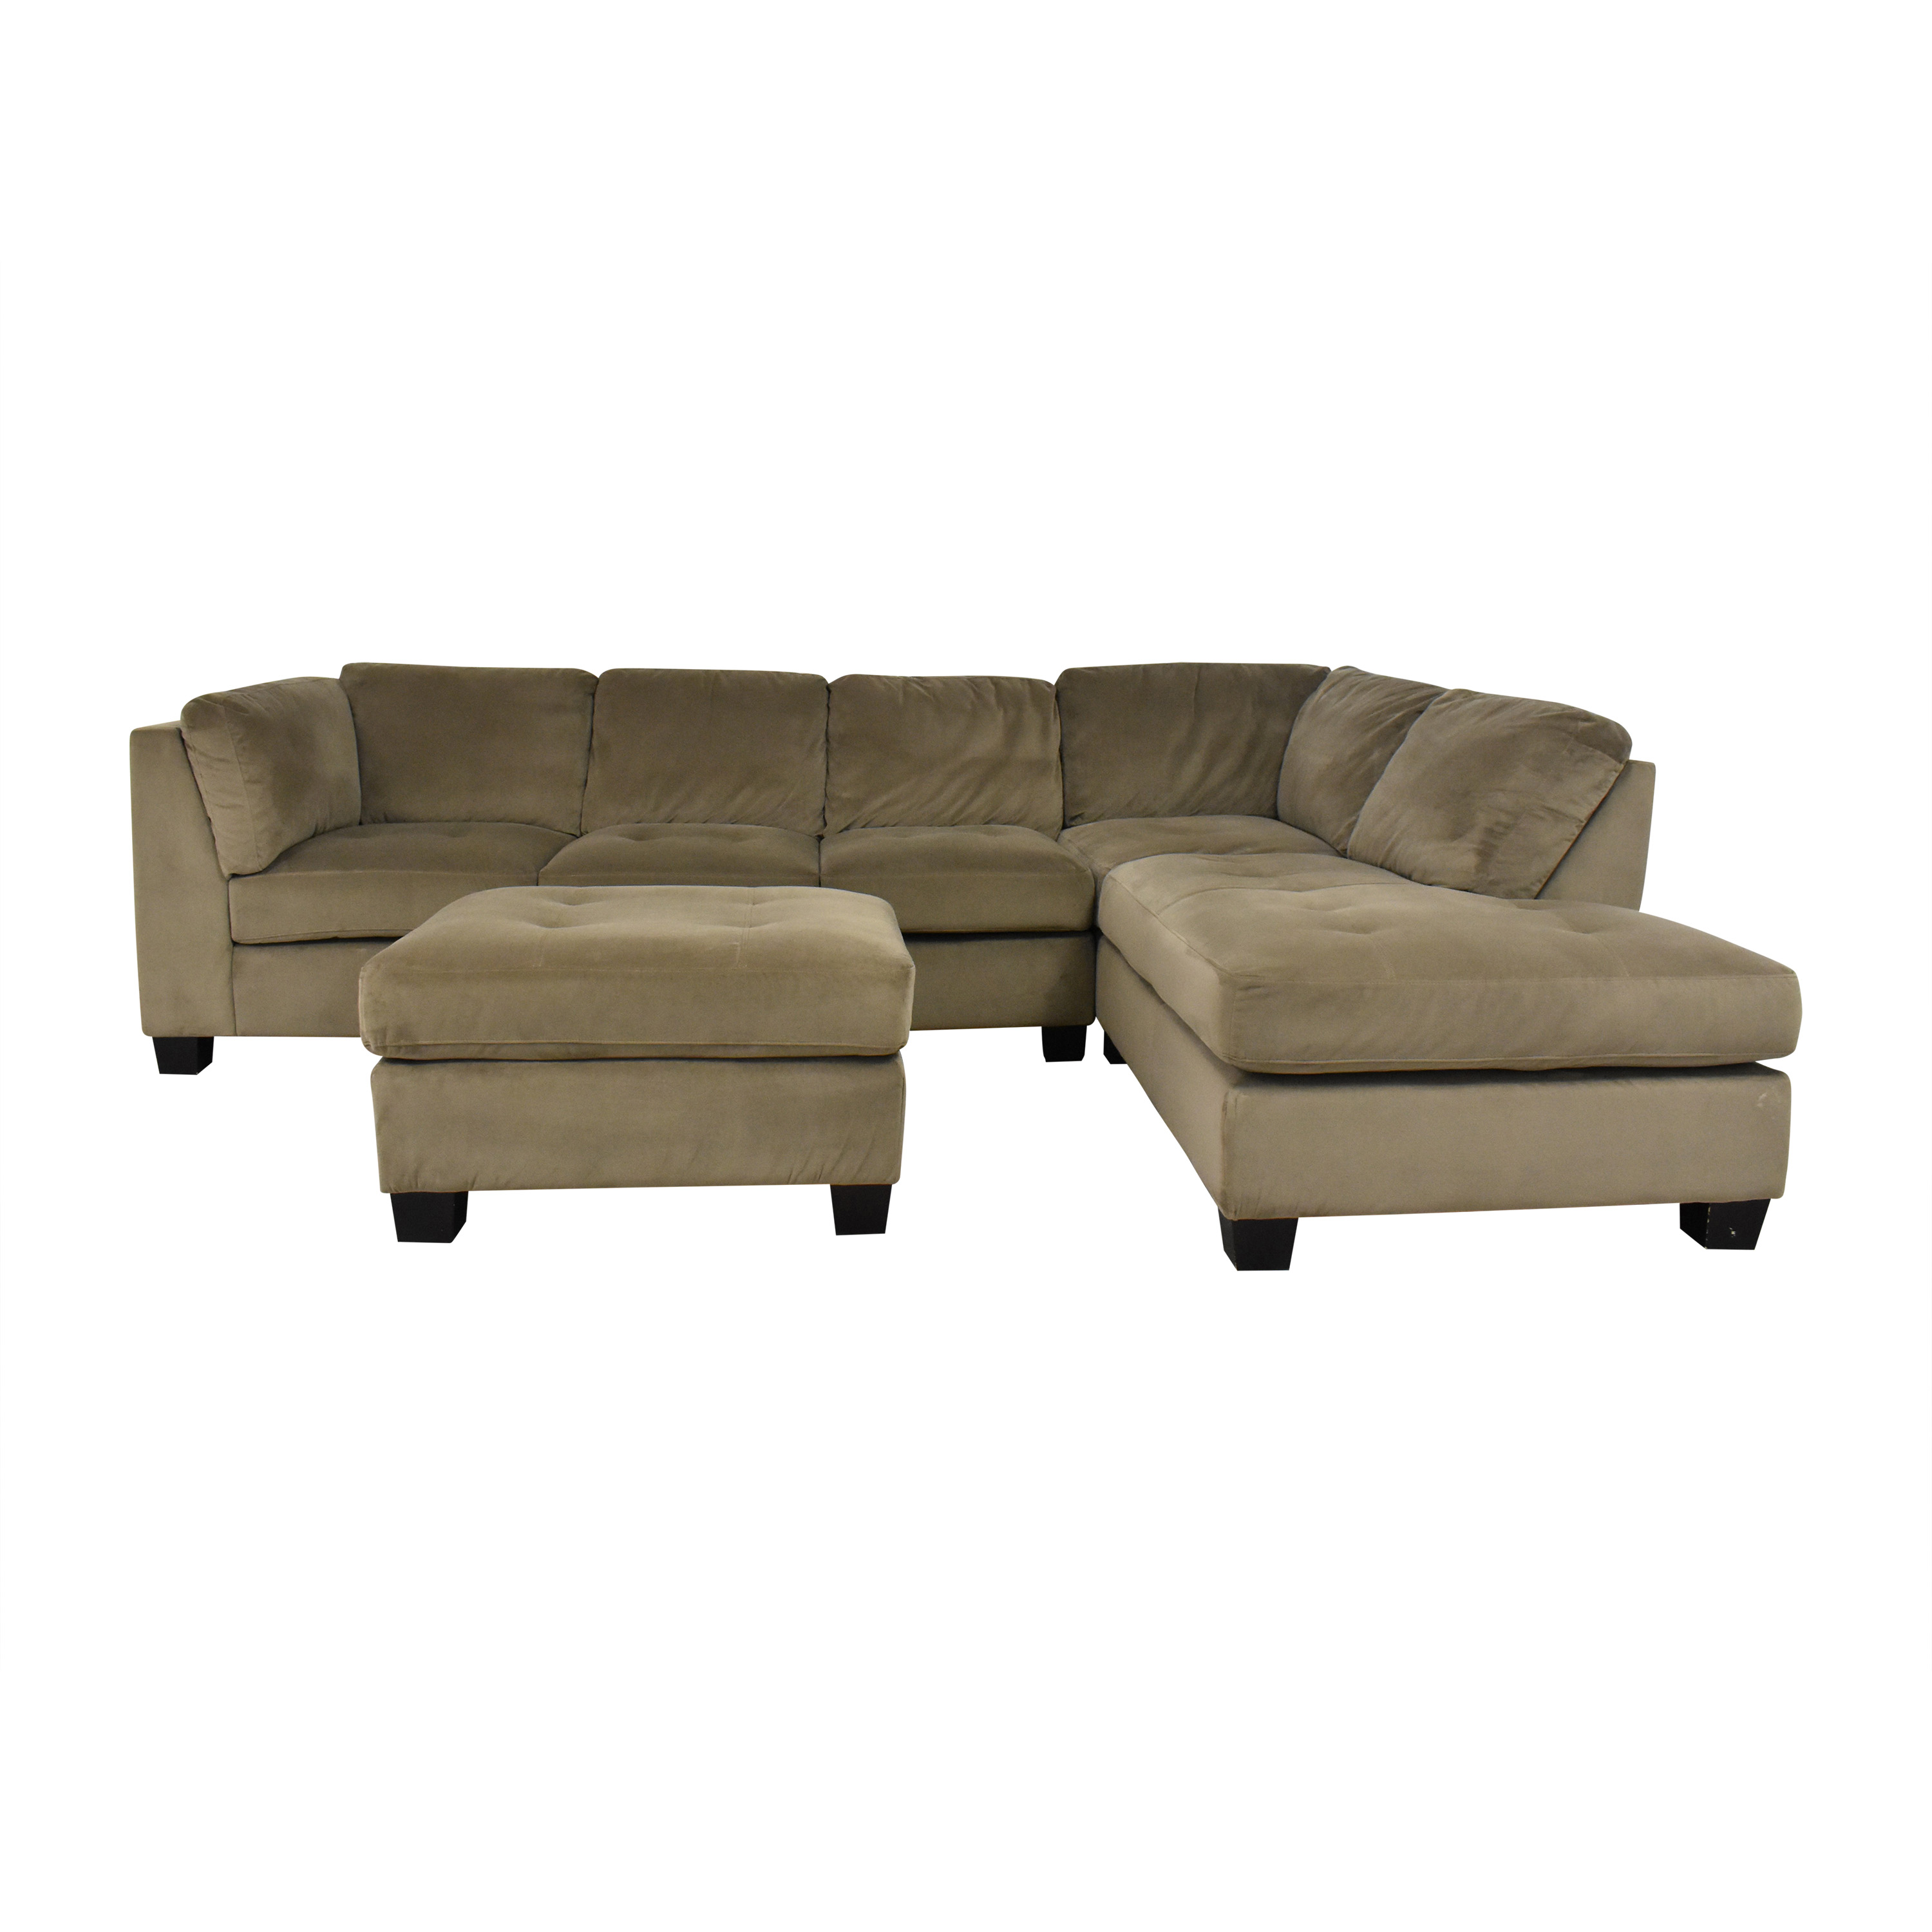 shop Costco Costco Tufted Chaise Sectional with Ottoman online